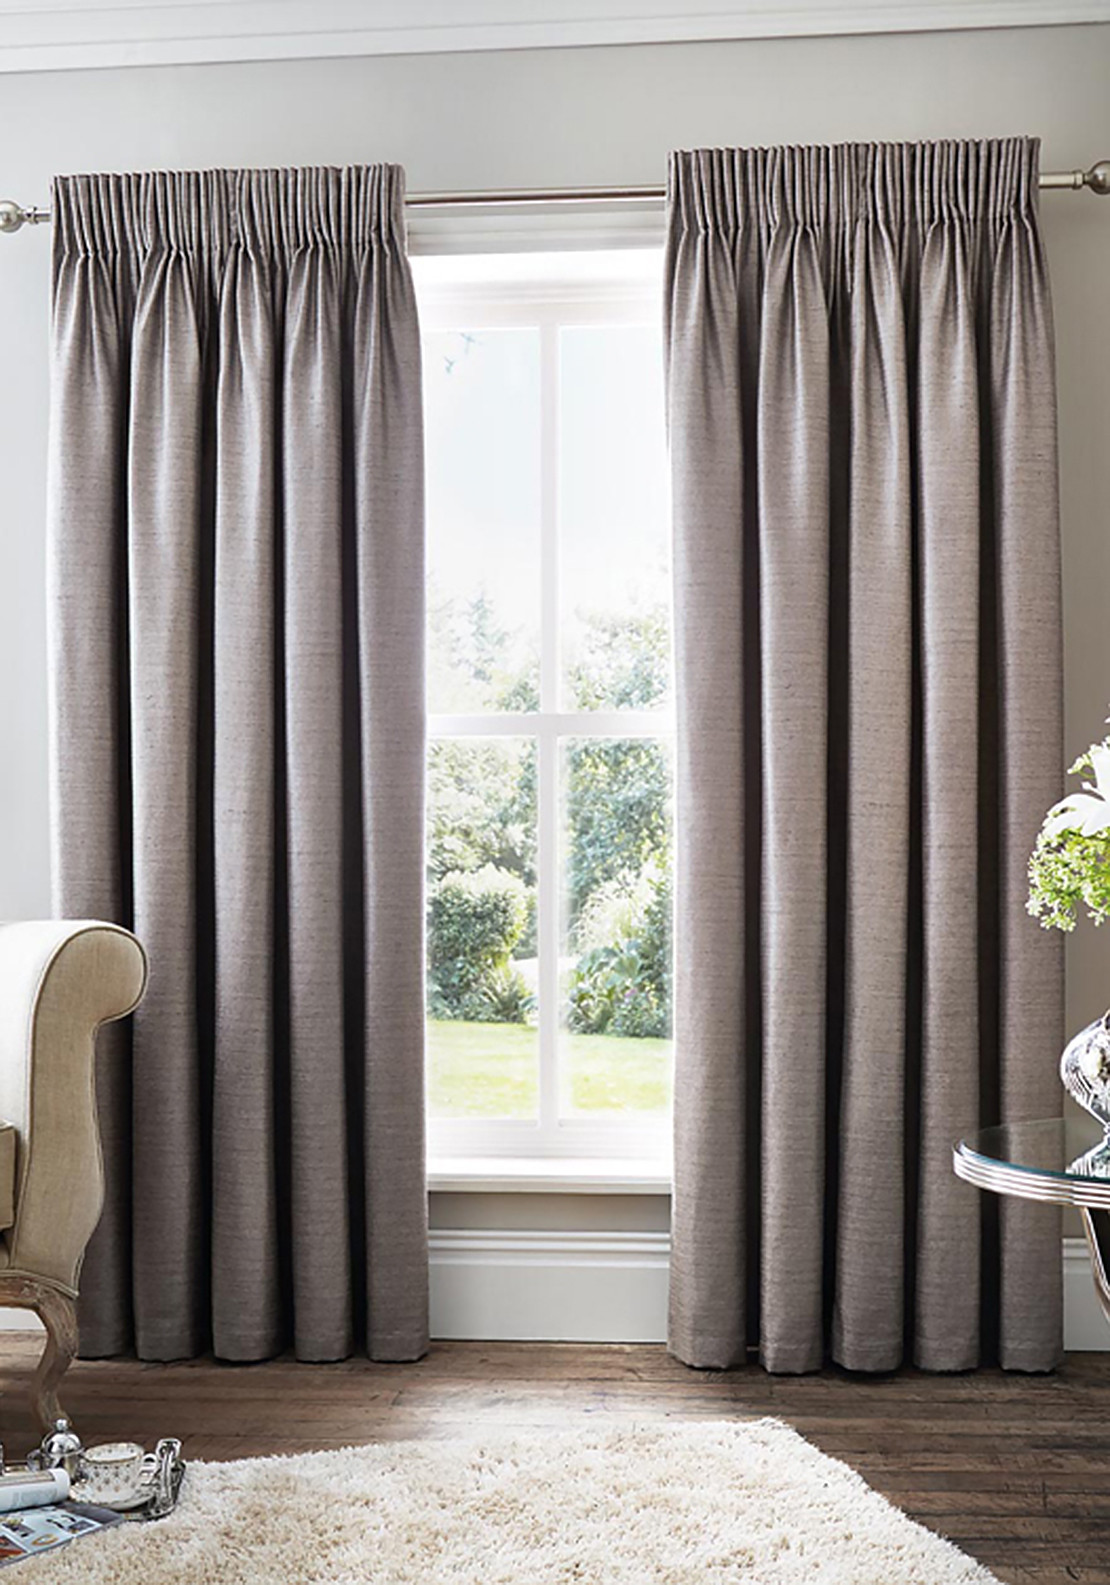 Curtina Rimini Fully Lined Curtains, Grey